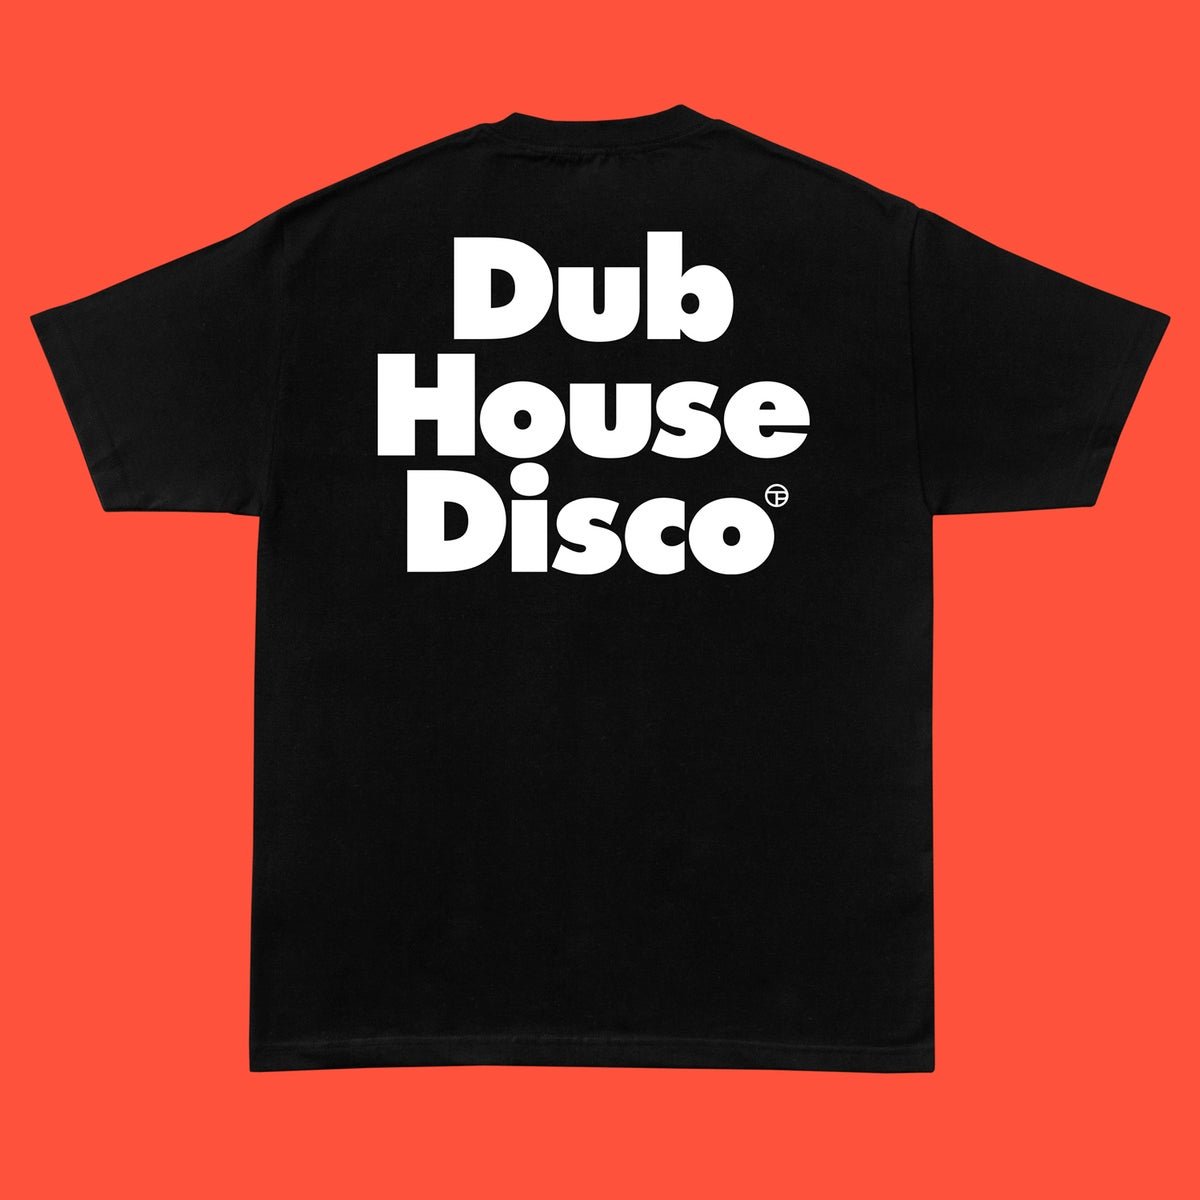 Image of Dub House Disco Tee – White On Black